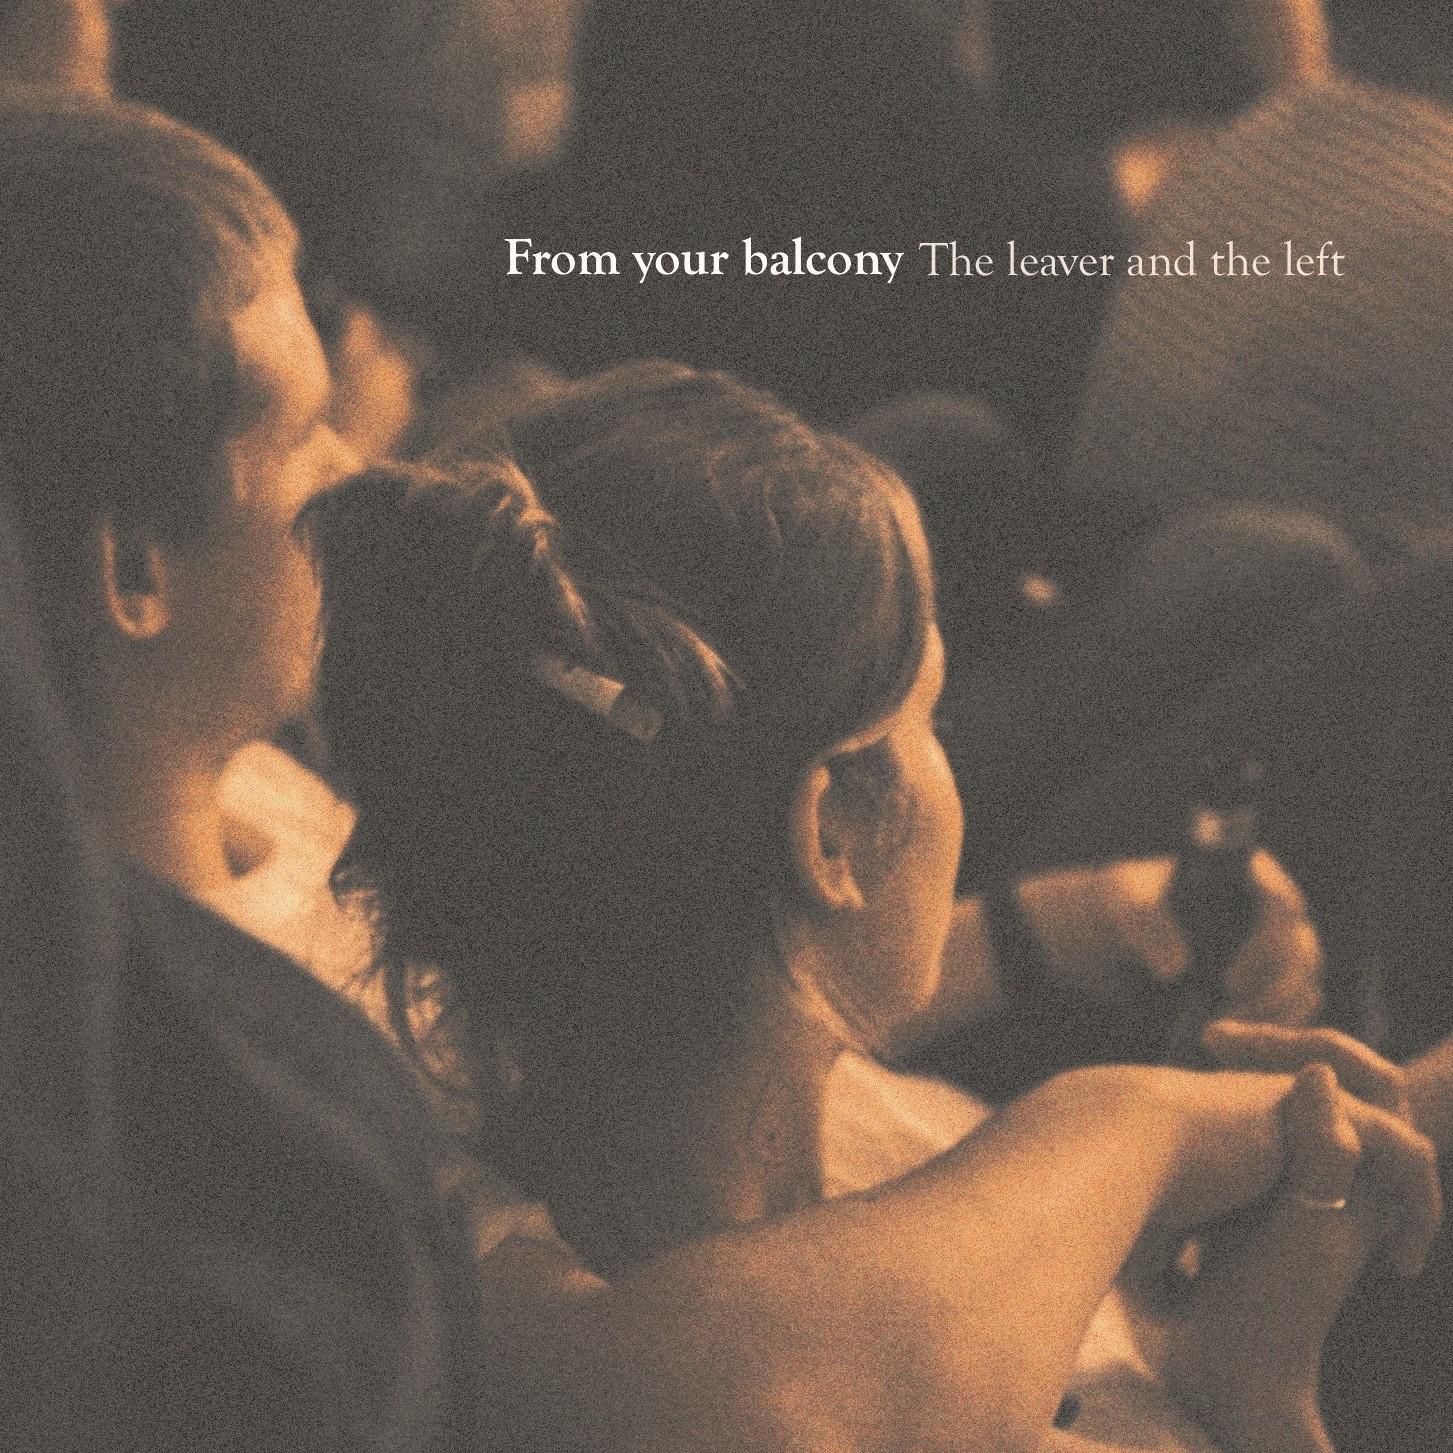 The leaver and the left CD - From your balcony